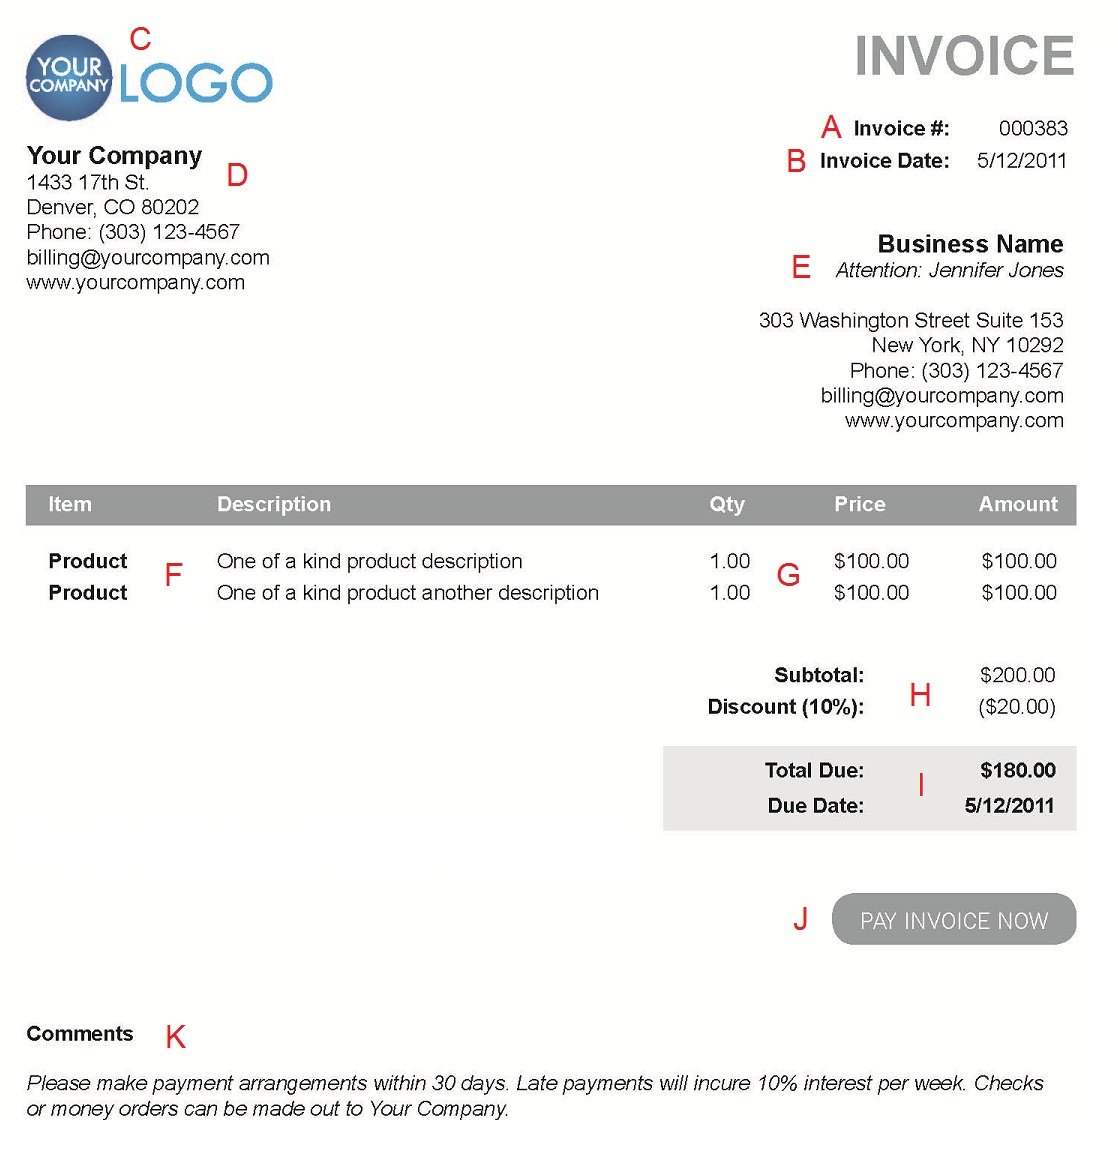 Carsforlessus  Pleasing The  Different Sections Of An Electronic Payment Invoice With Fetching A  With Cool Auto Shop Invoice Also Template For Invoices In Addition Invoice For Mac And Automobile Invoice Prices As Well As Create A Paypal Invoice Additionally Invoice Program For Mac From Paysimplecom With Carsforlessus  Fetching The  Different Sections Of An Electronic Payment Invoice With Cool A  And Pleasing Auto Shop Invoice Also Template For Invoices In Addition Invoice For Mac From Paysimplecom